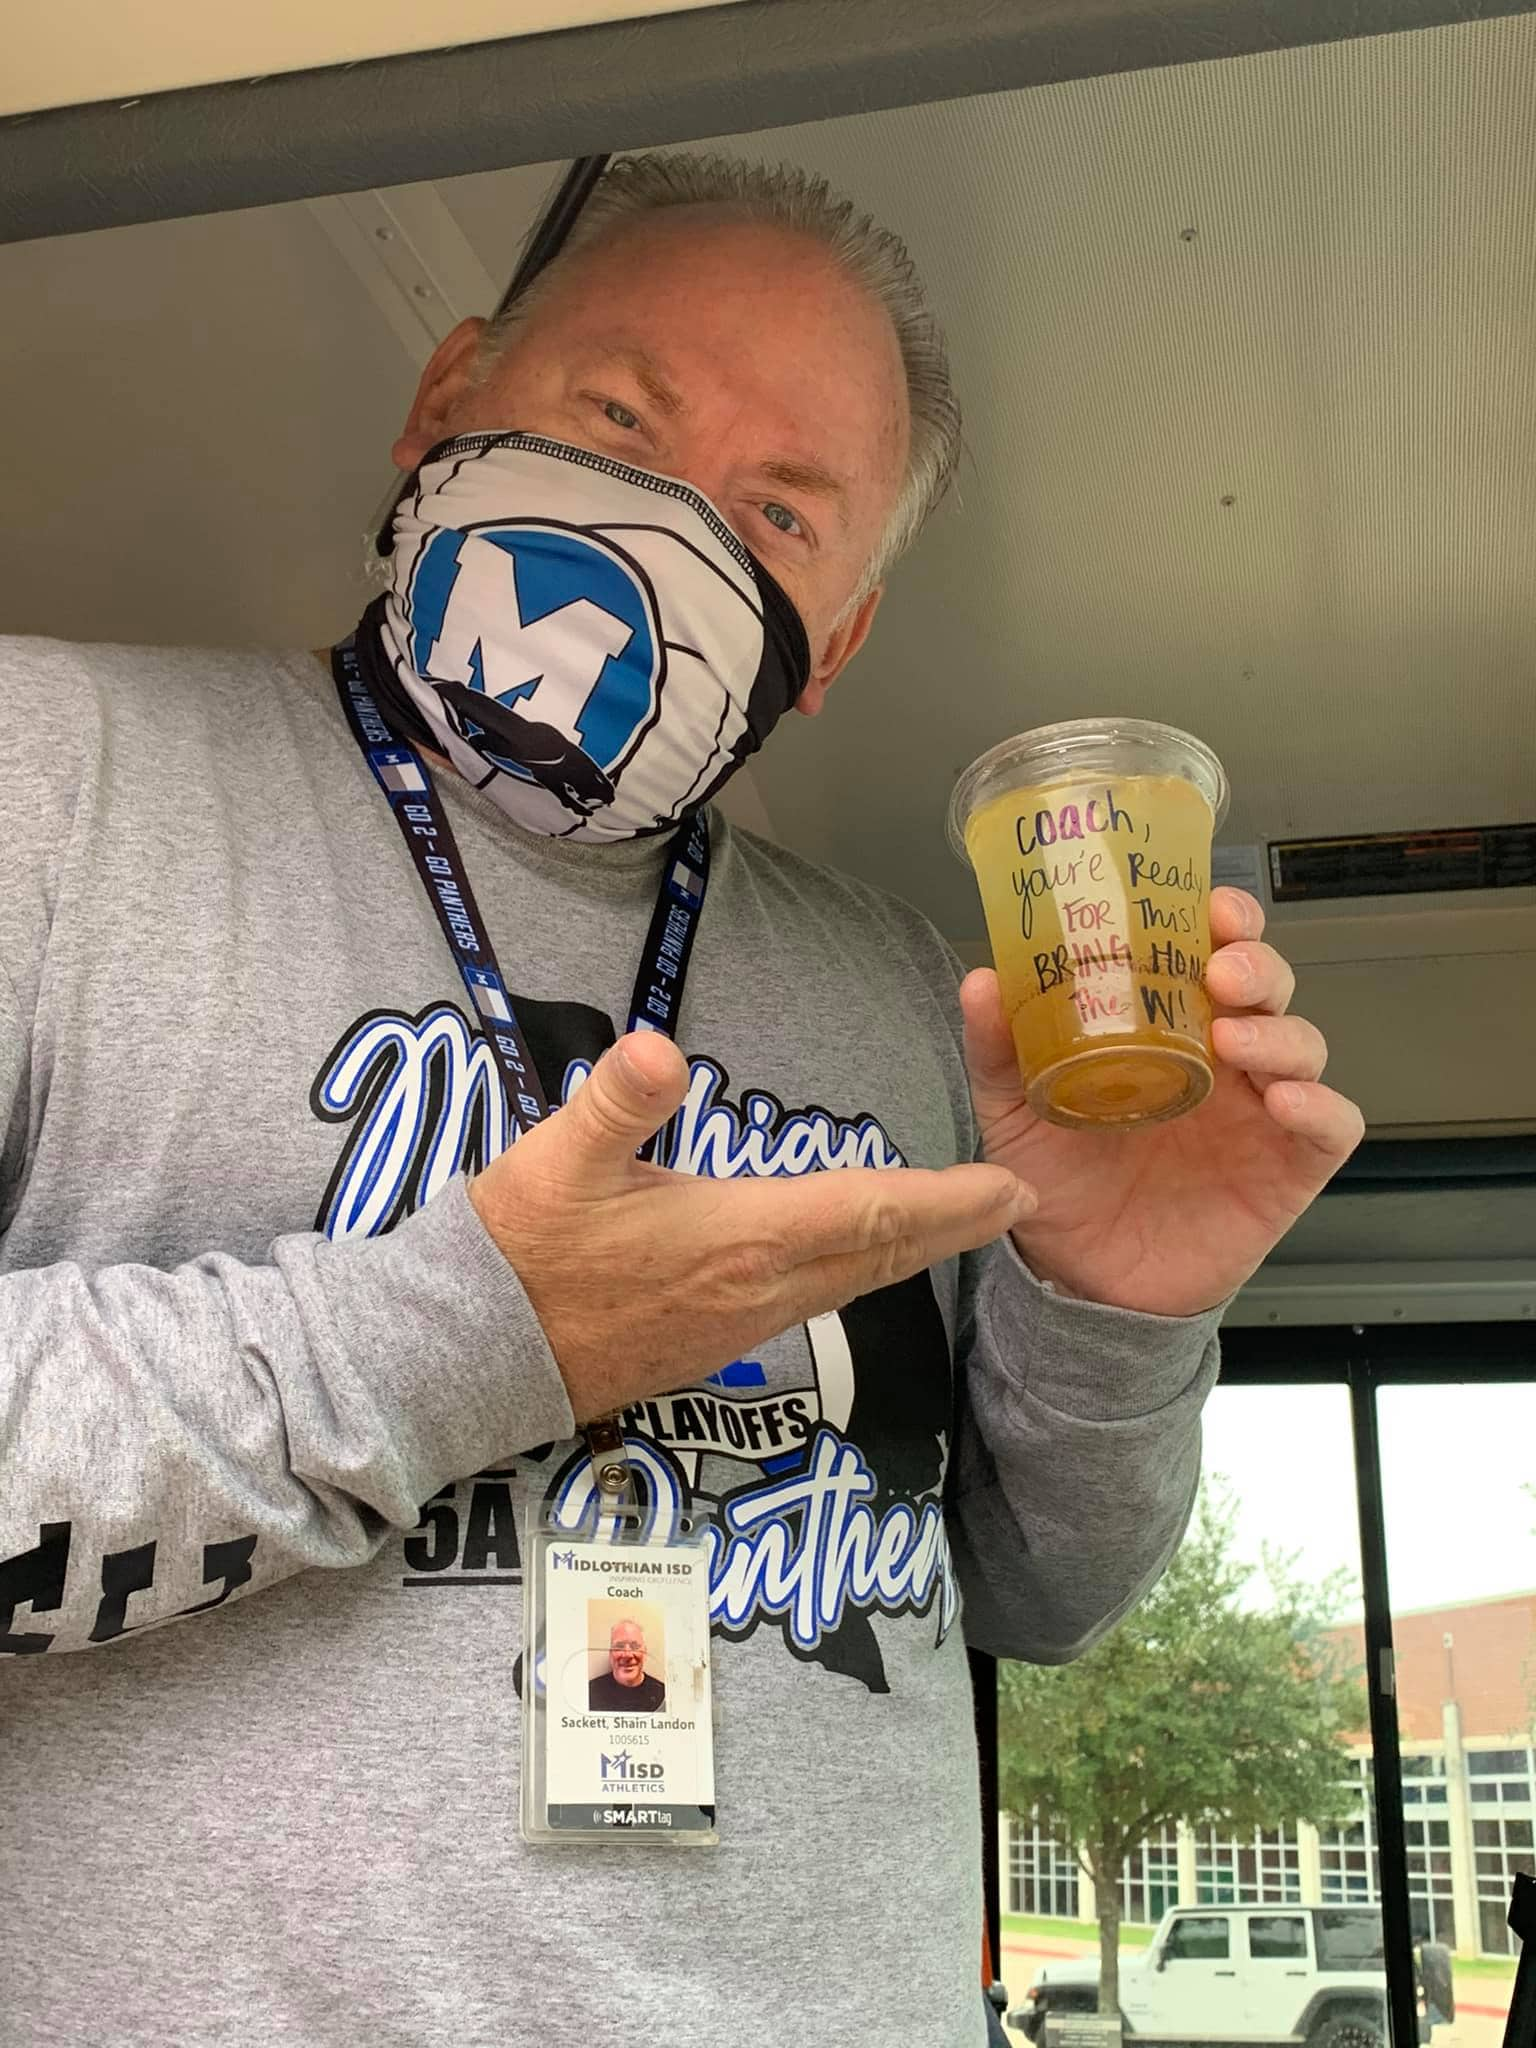 Coach Sackett with face mask